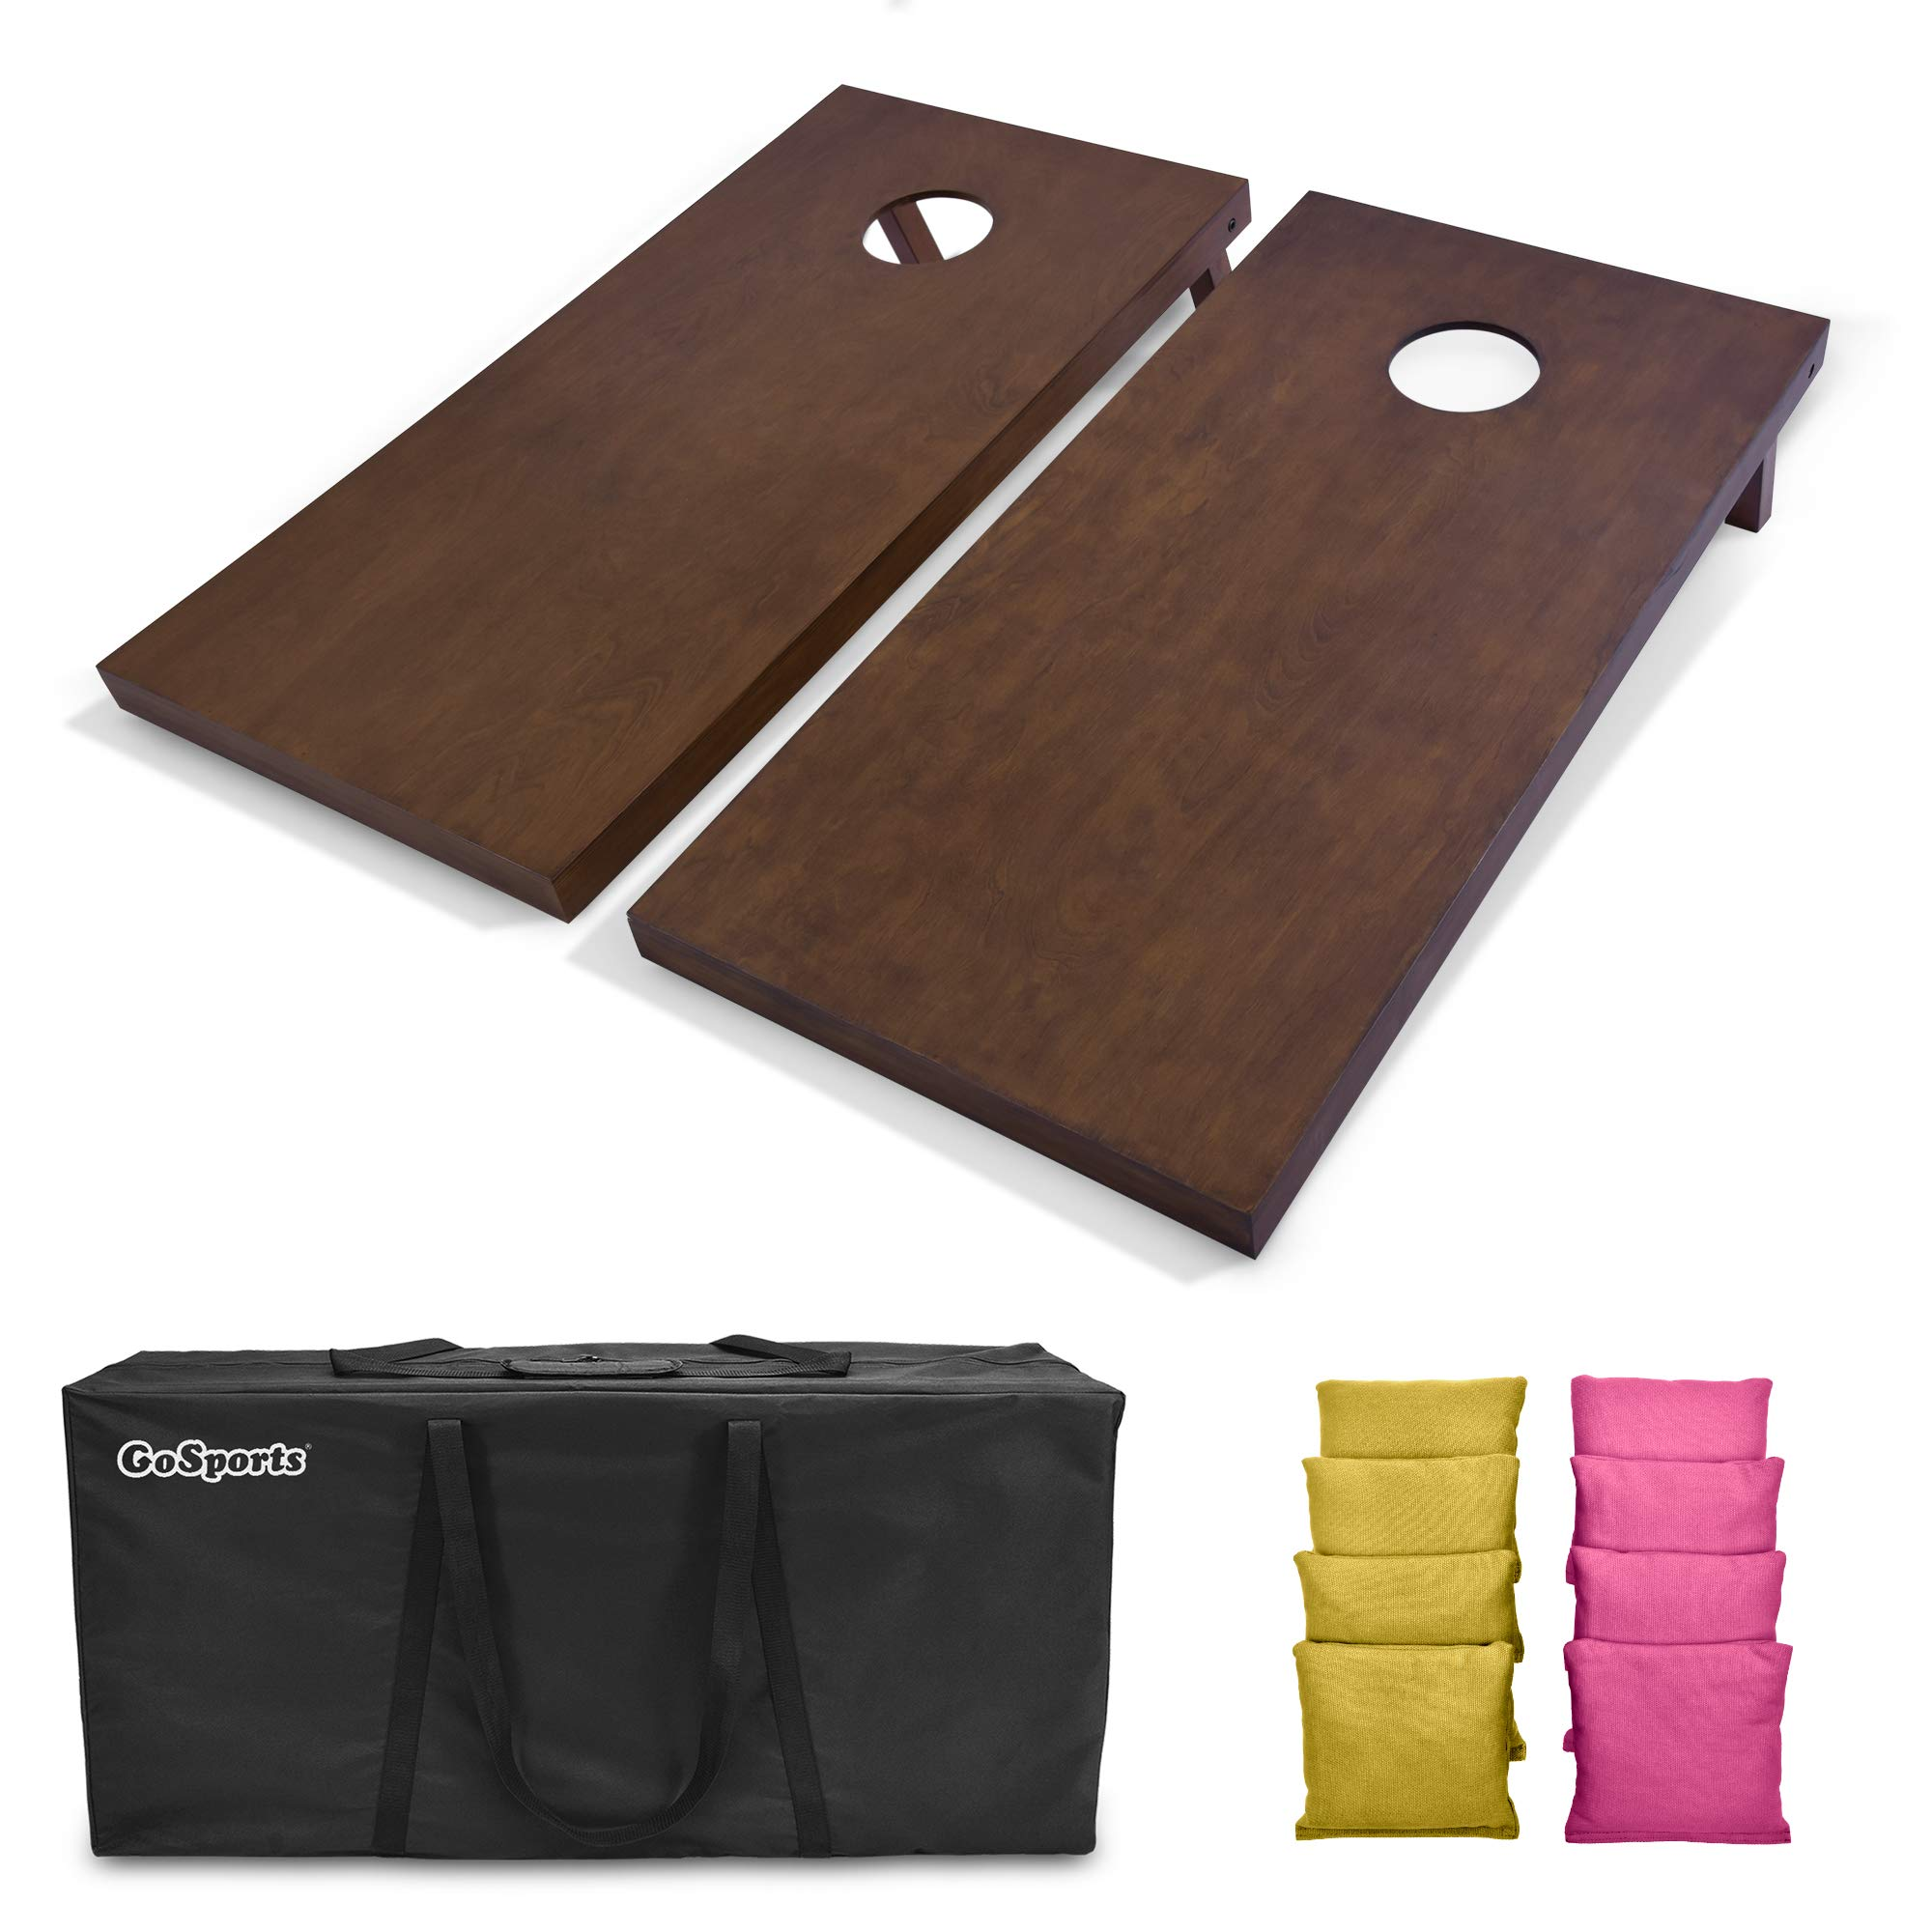 GoSports 4'x2' Regulation Size Wooden Cornhole Boards Set with Dark Brown Varnish | Includes Carrying Case and Bean Bags (Choose Your Colors) Over 100 Color Combinations by GoSports